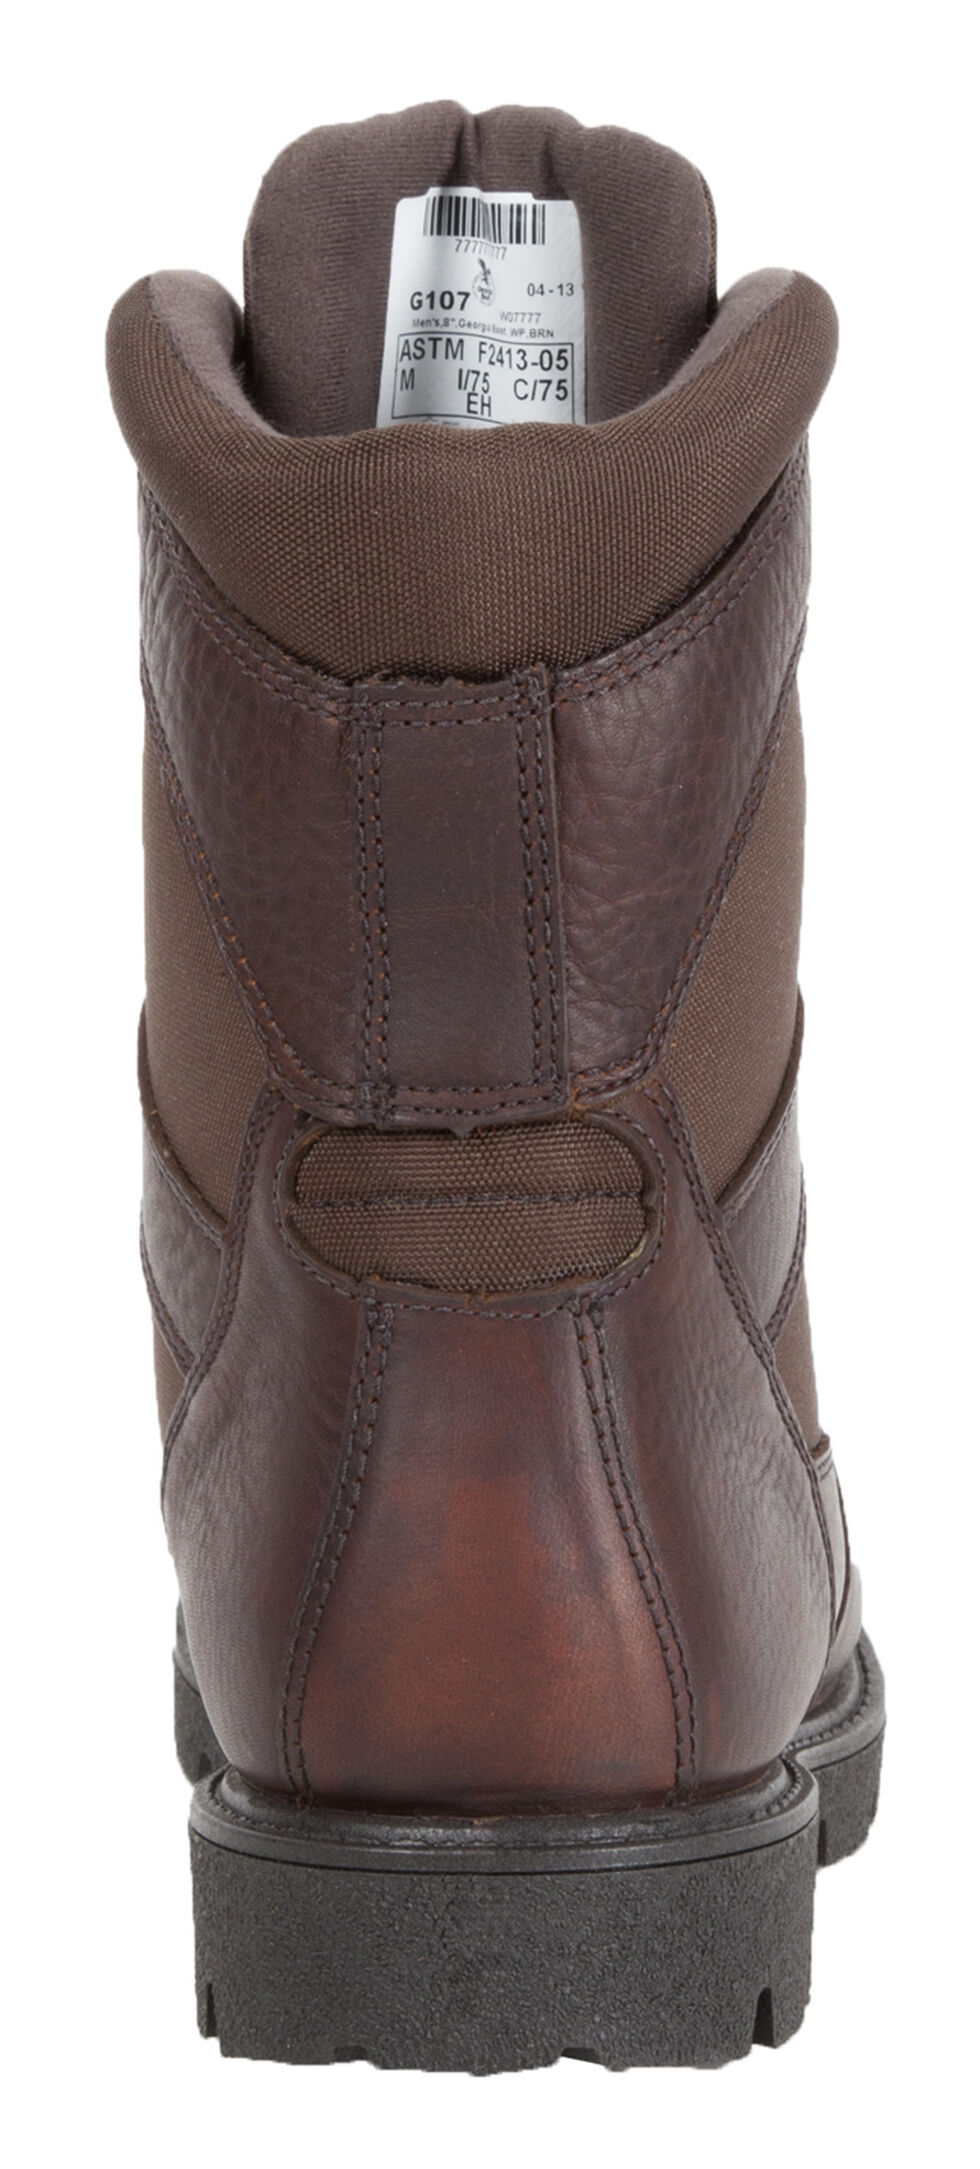 "Georgia Homeland 8"" Insulated Waterproof Work Boots - Round Toe, Brown, hi-res"